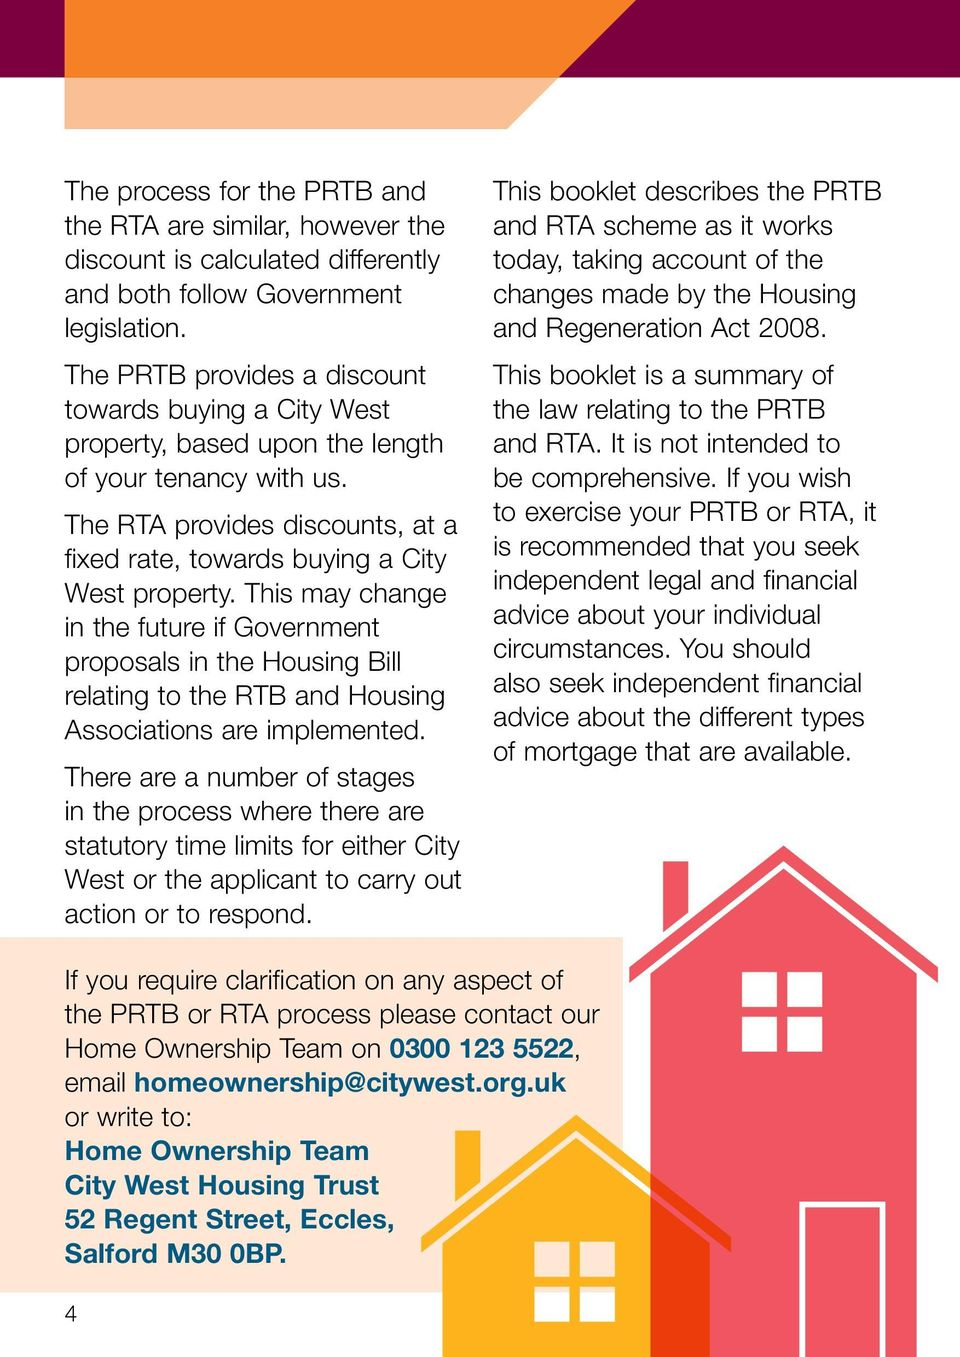 This may change in the future if Government proposals in the Housing Bill relating to the RTB and Housing Associations are implemented.